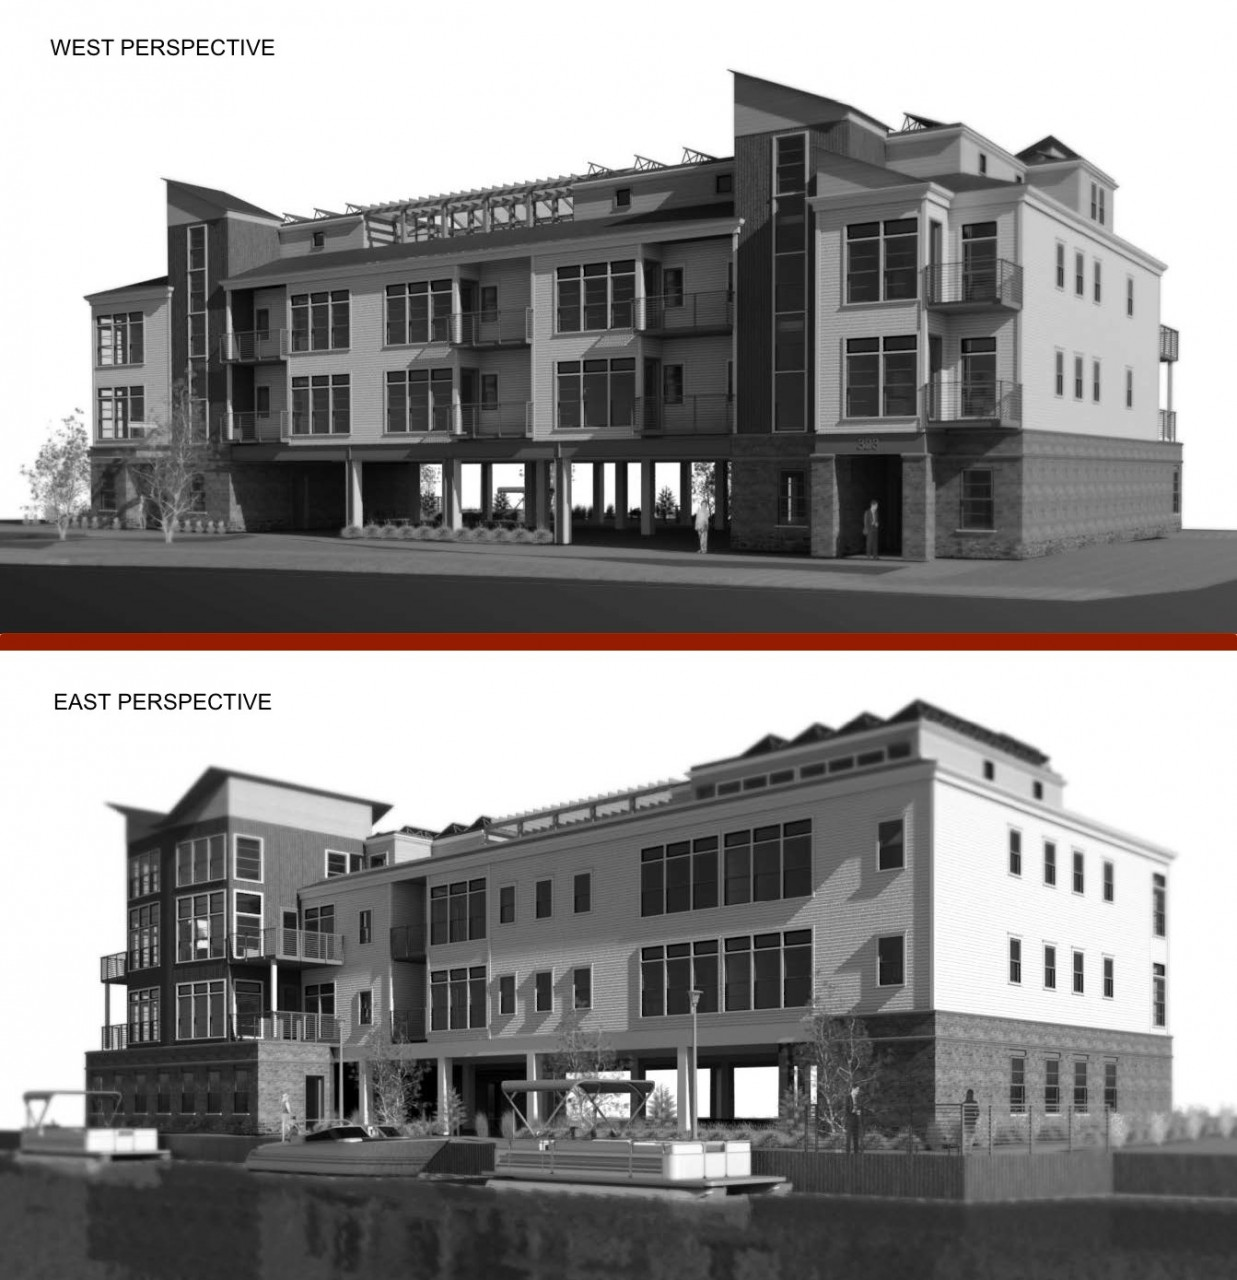 323 Taughannock Boulevard - Planning Board Presentation - 07-22-14_Page_16